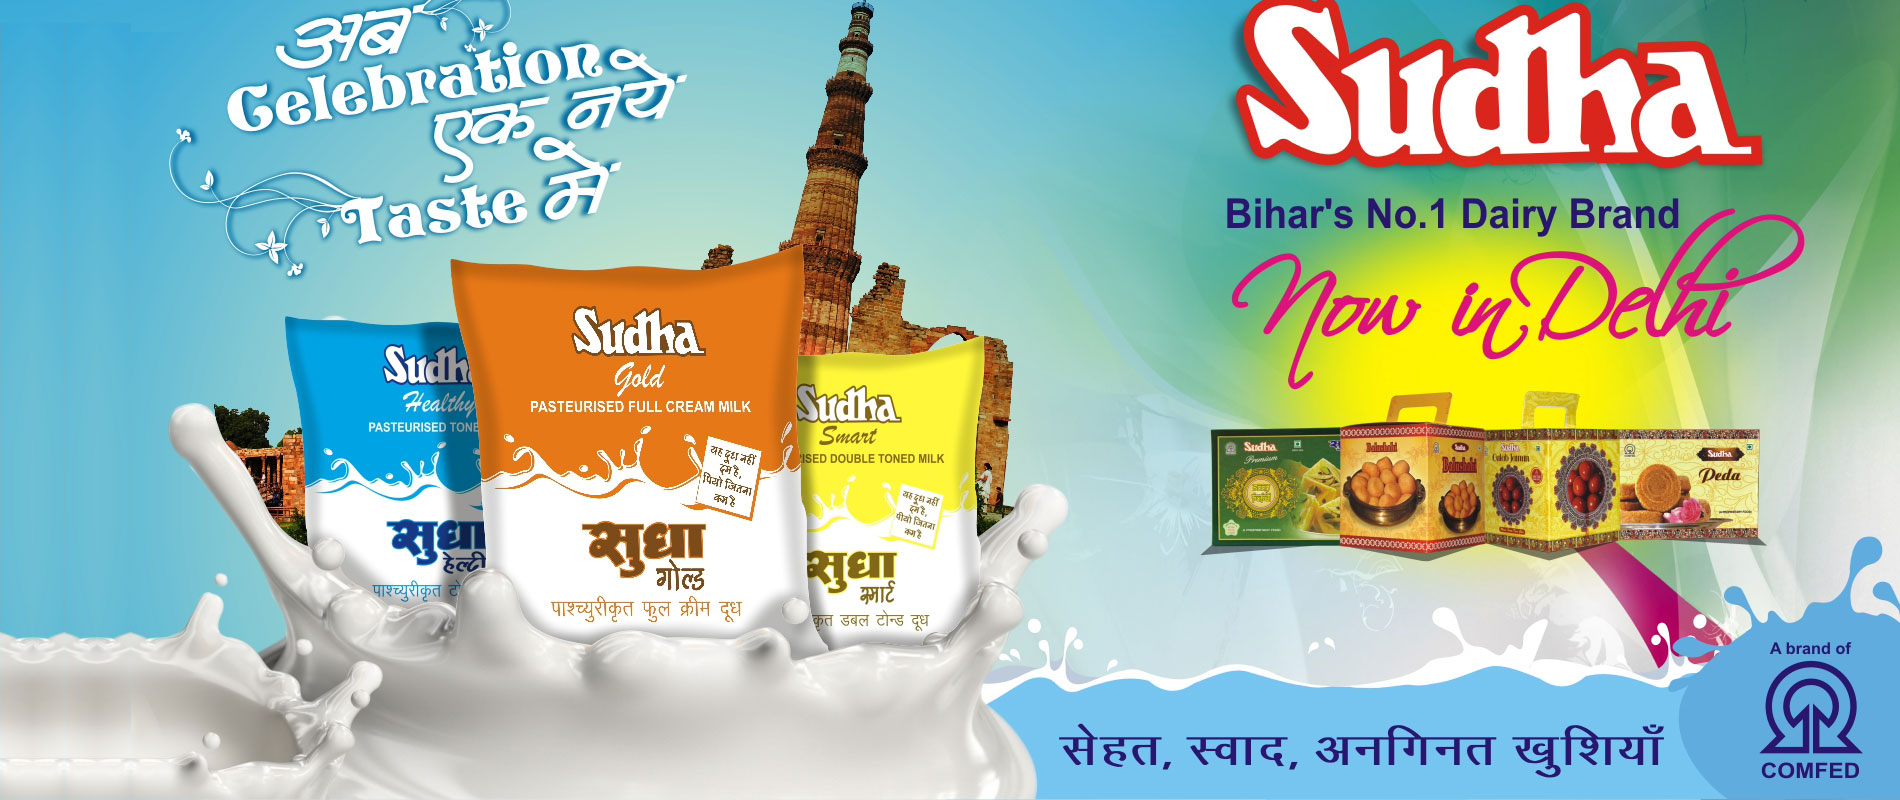 Welcome to Patna Dairy Projects | Sudha Milk Products